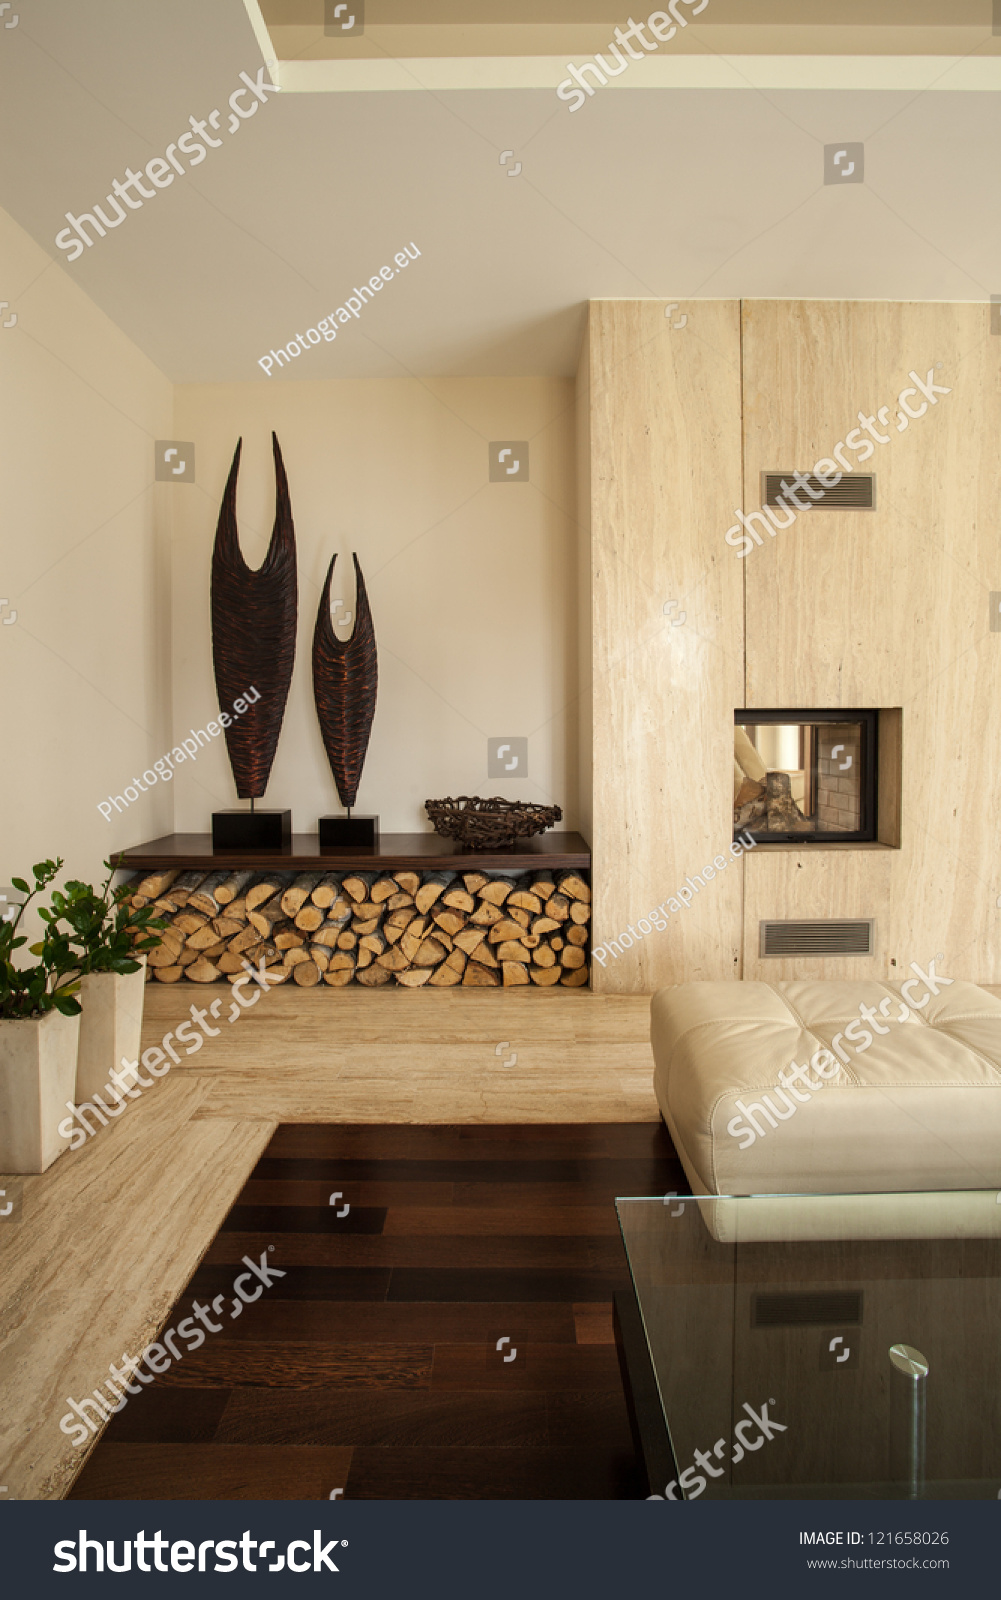 travertine house vertical view of living room interior stock